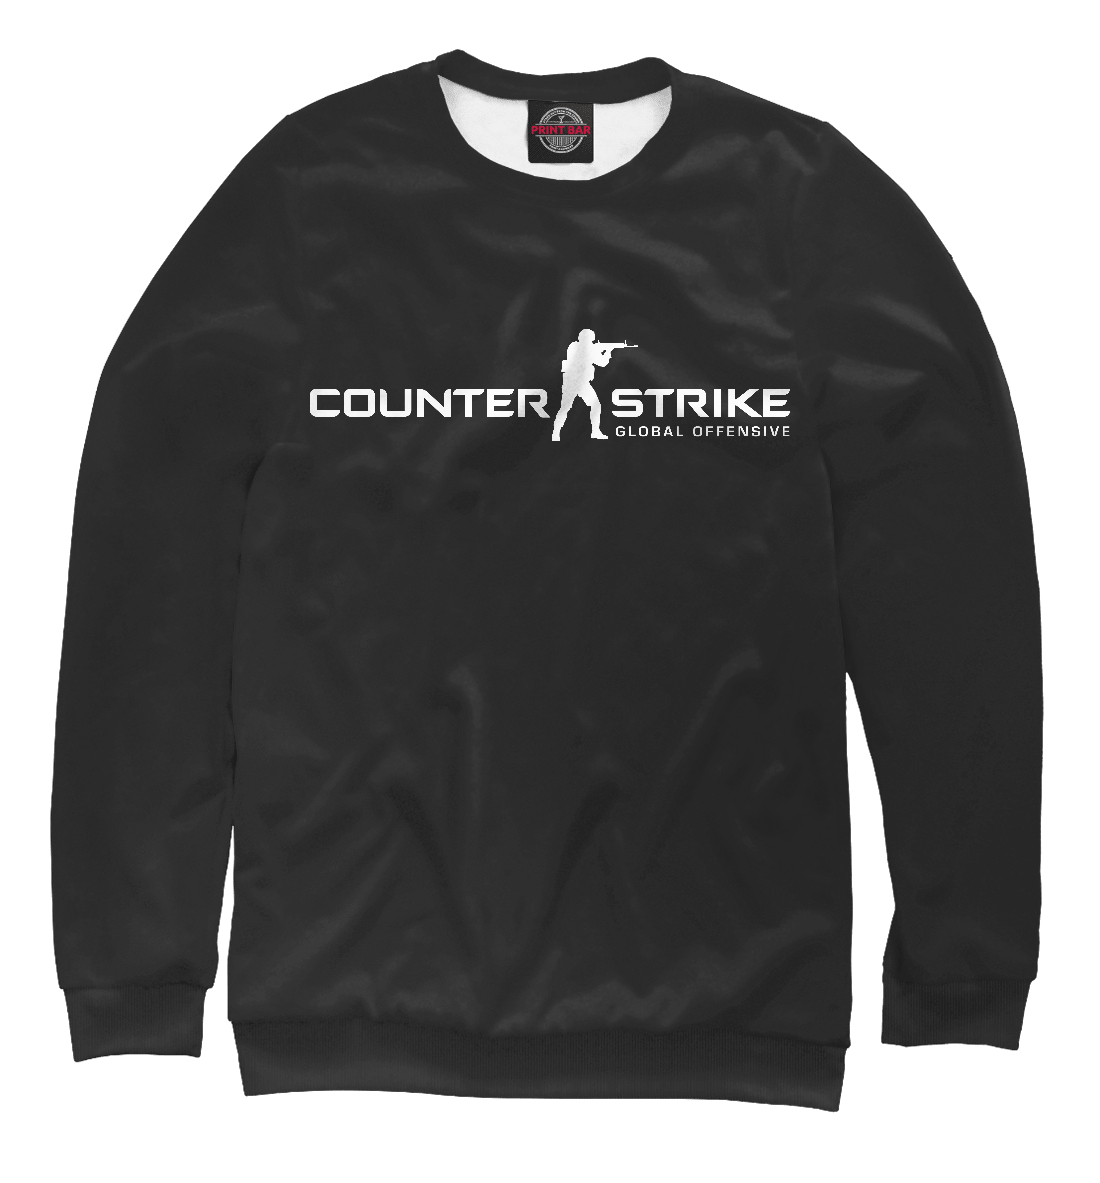 Купить Counter-Strike Global Offensive, Printbar, Свитшоты, COU-920952-swi-1